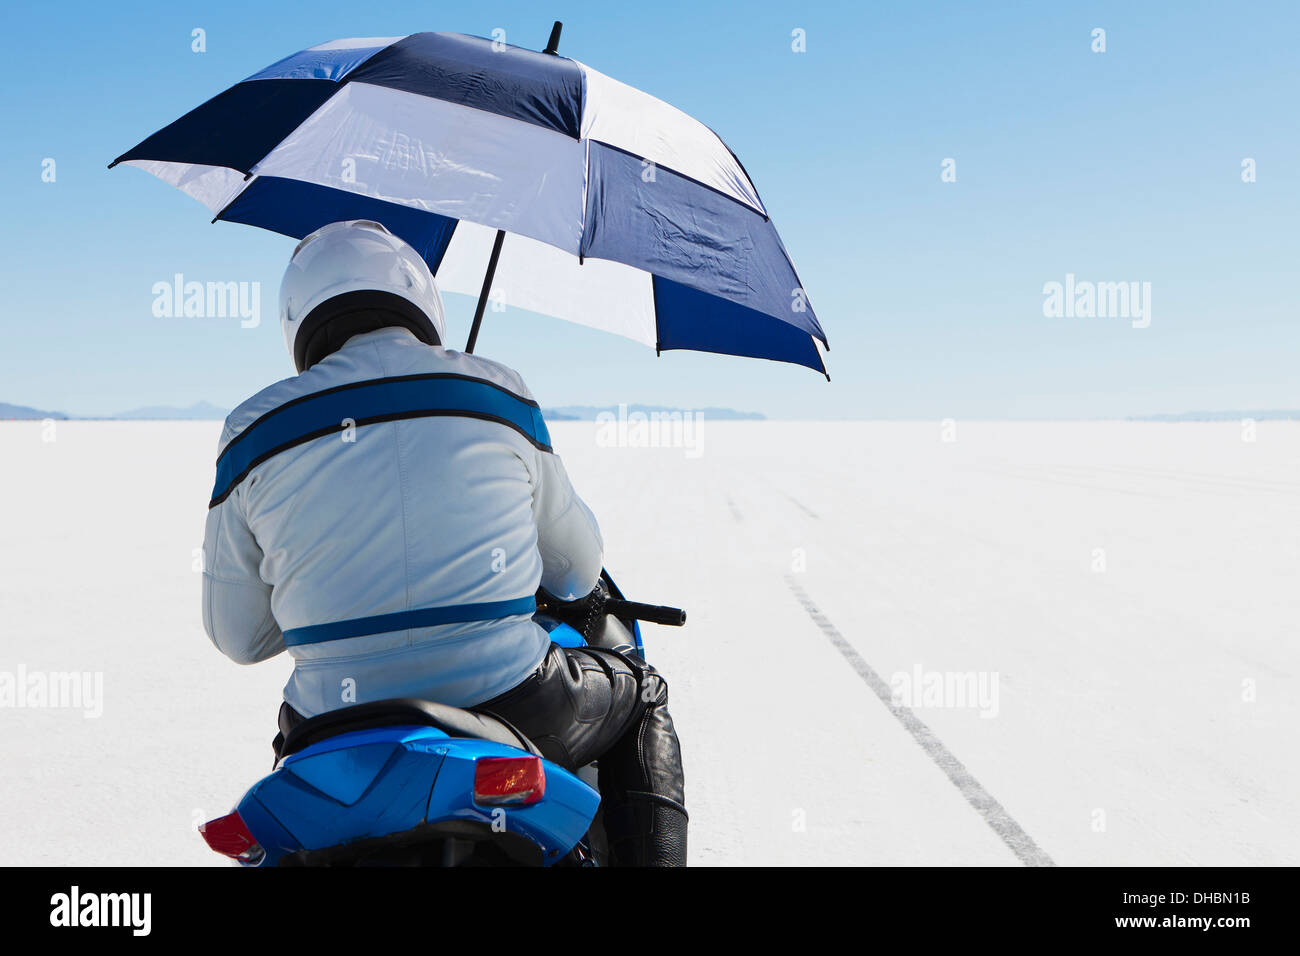 A motorcyclist sheltering under an umbrella, on the start line at Speed Week, on the Bonneville Salt Flats. - Stock Image